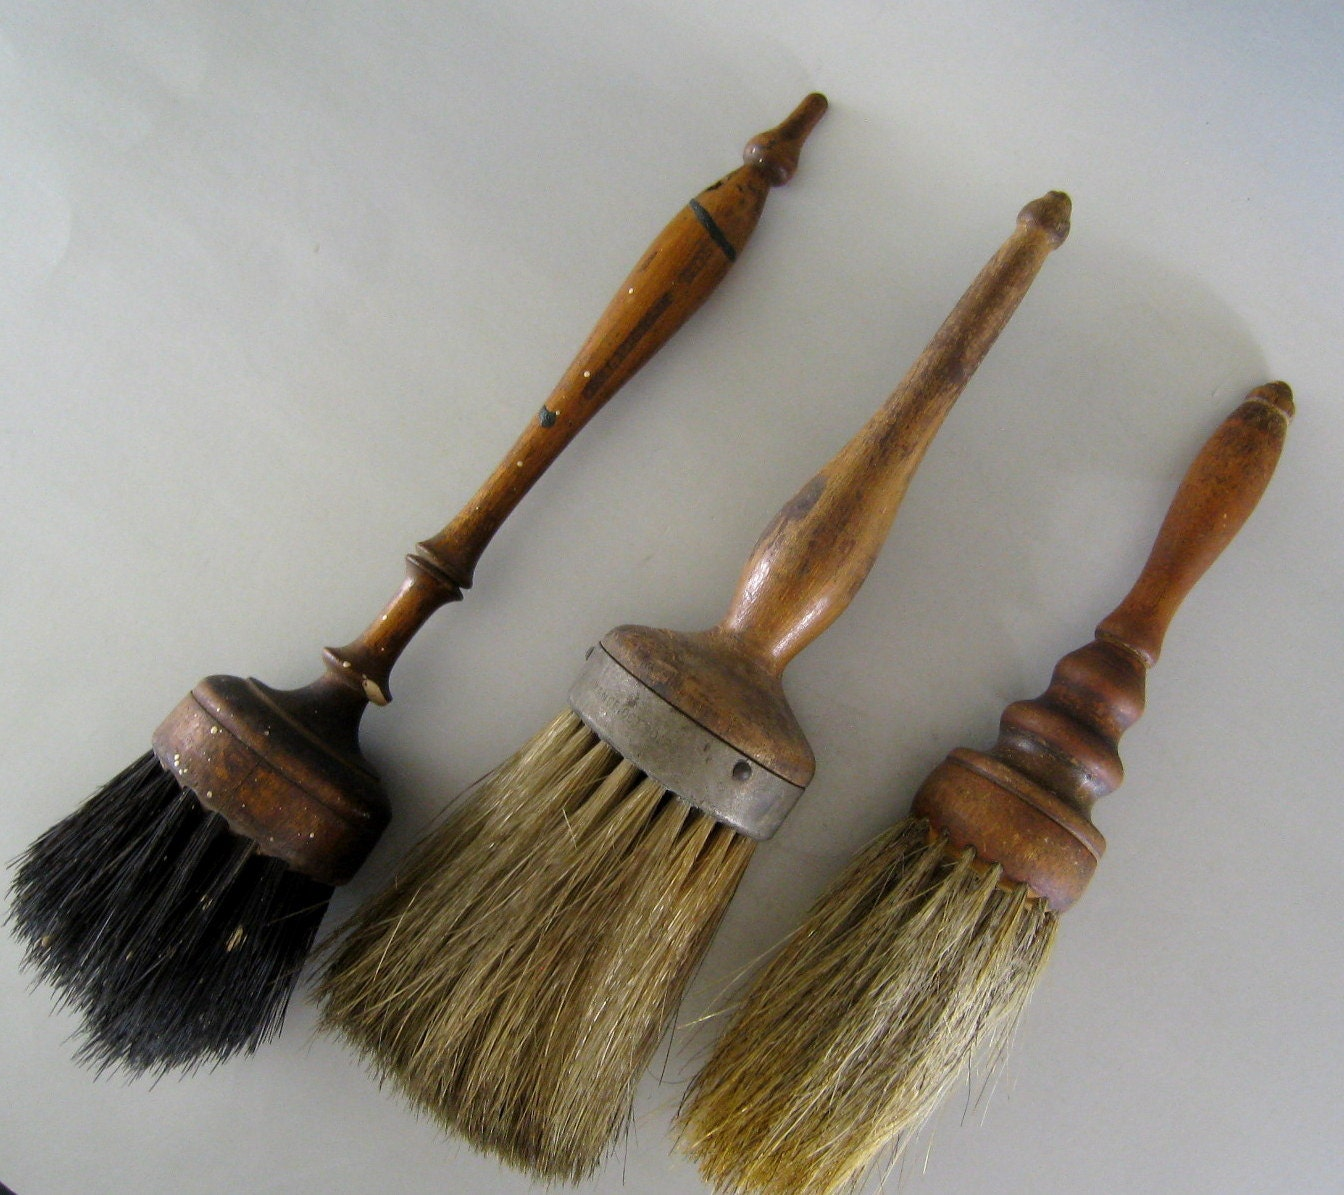 3 Antique Horsehair Brushes C 1900 Turned Handle By Unfocused